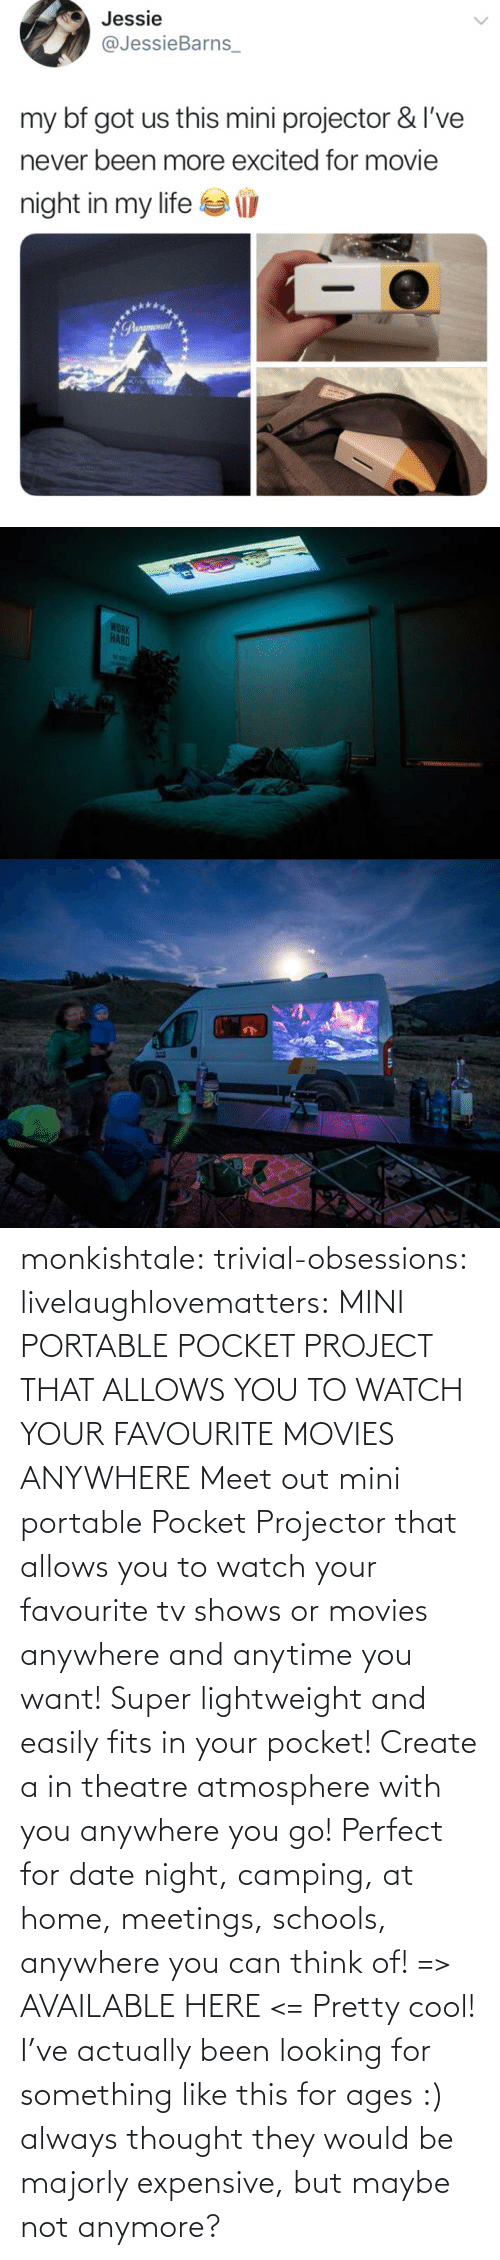 Watch: monkishtale: trivial-obsessions:   livelaughlovematters:   MINI PORTABLE POCKET PROJECT THAT ALLOWS YOU TO WATCH YOUR FAVOURITE MOVIES ANYWHERE Meet out mini portable Pocket Projector that allows you to watch your favourite tv shows or movies anywhere and anytime you want! Super lightweight and easily fits in your pocket! Create a in theatre atmosphere with you anywhere you go! Perfect for date night, camping, at home, meetings, schools, anywhere you can think of! => AVAILABLE HERE <=    Pretty cool!    I've actually been looking for something like this for ages :) always thought they would be majorly expensive, but maybe not anymore?